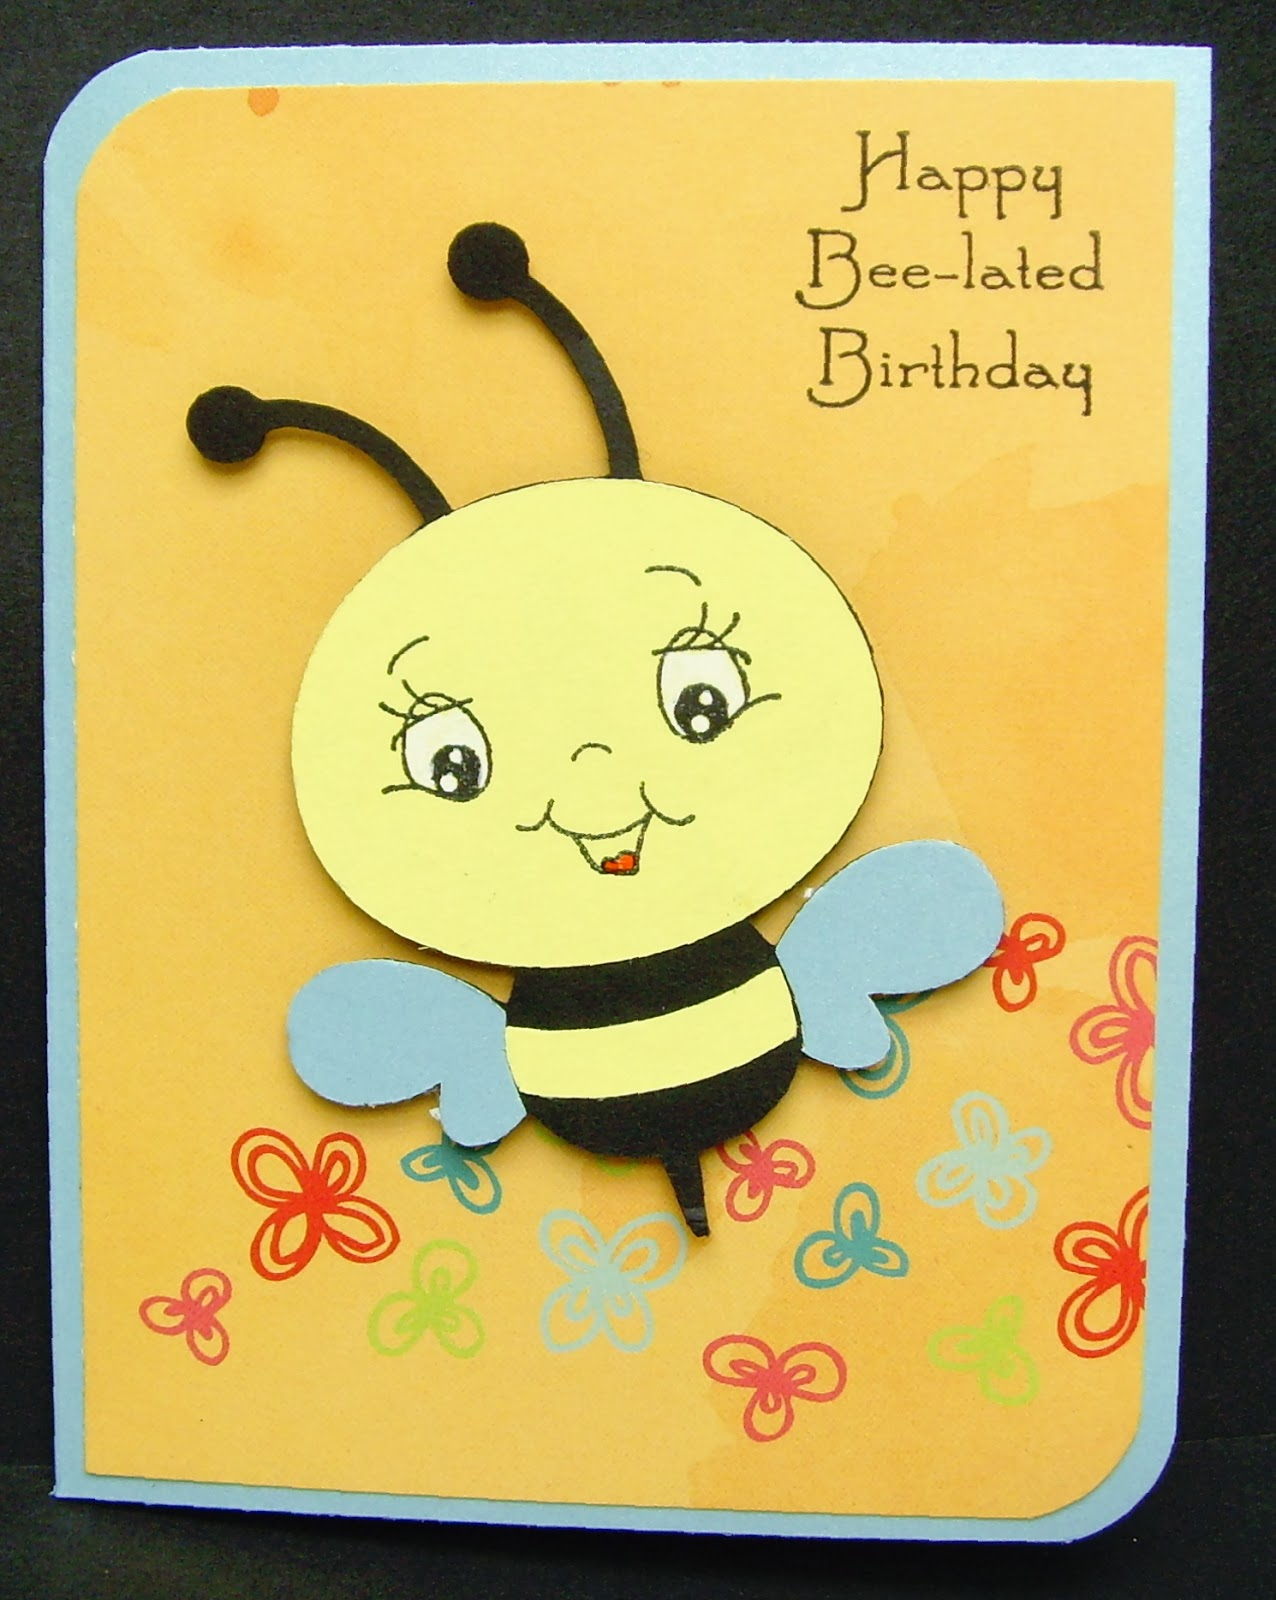 Scrapping runner creations bee lated birthday card i love all the images on the create a critter cartridge especially this little bee i hid the face cuts on my gypsy so i could use a cute peachy keen face bookmarktalkfo Choice Image